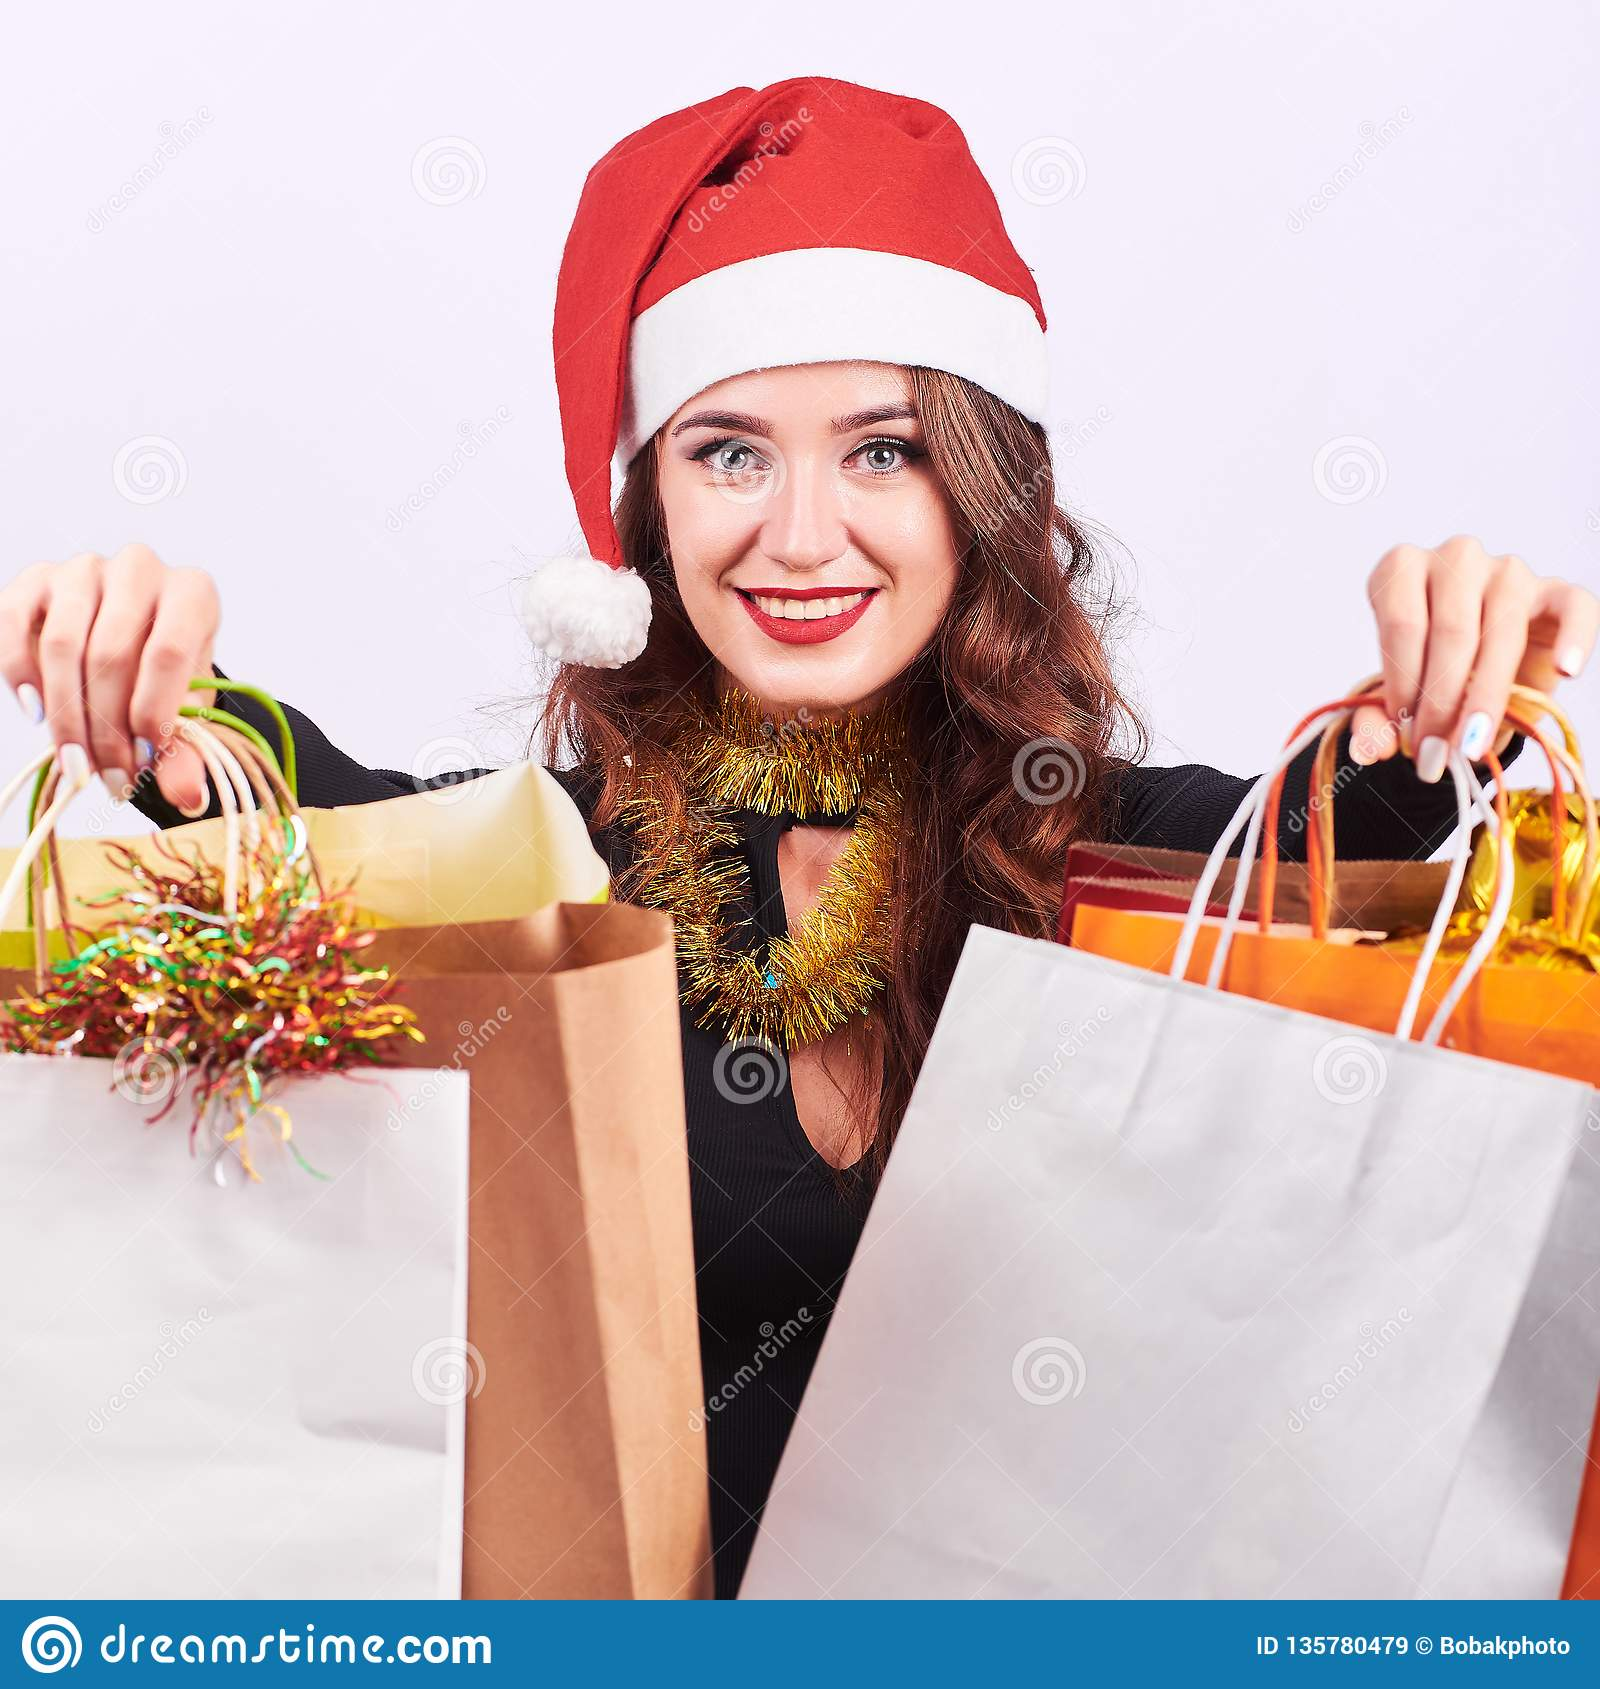 0e4d3de7ee115 stylish-young-brunette-woman-colorful-shopping-bags-portrait-young-happy- woman-red-santa-claus-hat-holding-colorful-135780479.jpg